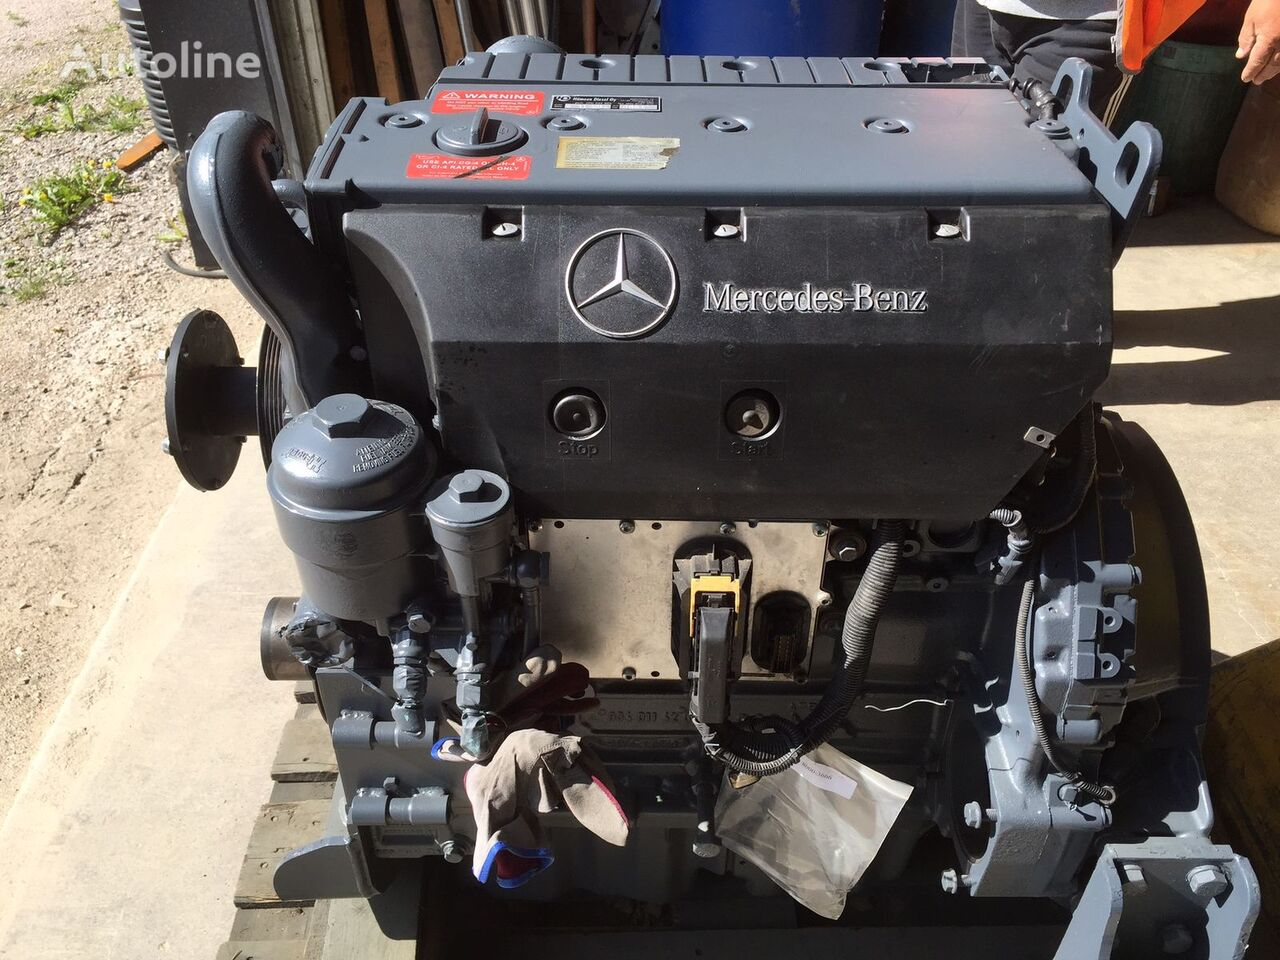 motore MERCEDES-BENZ refurbished OM904 LA per camion